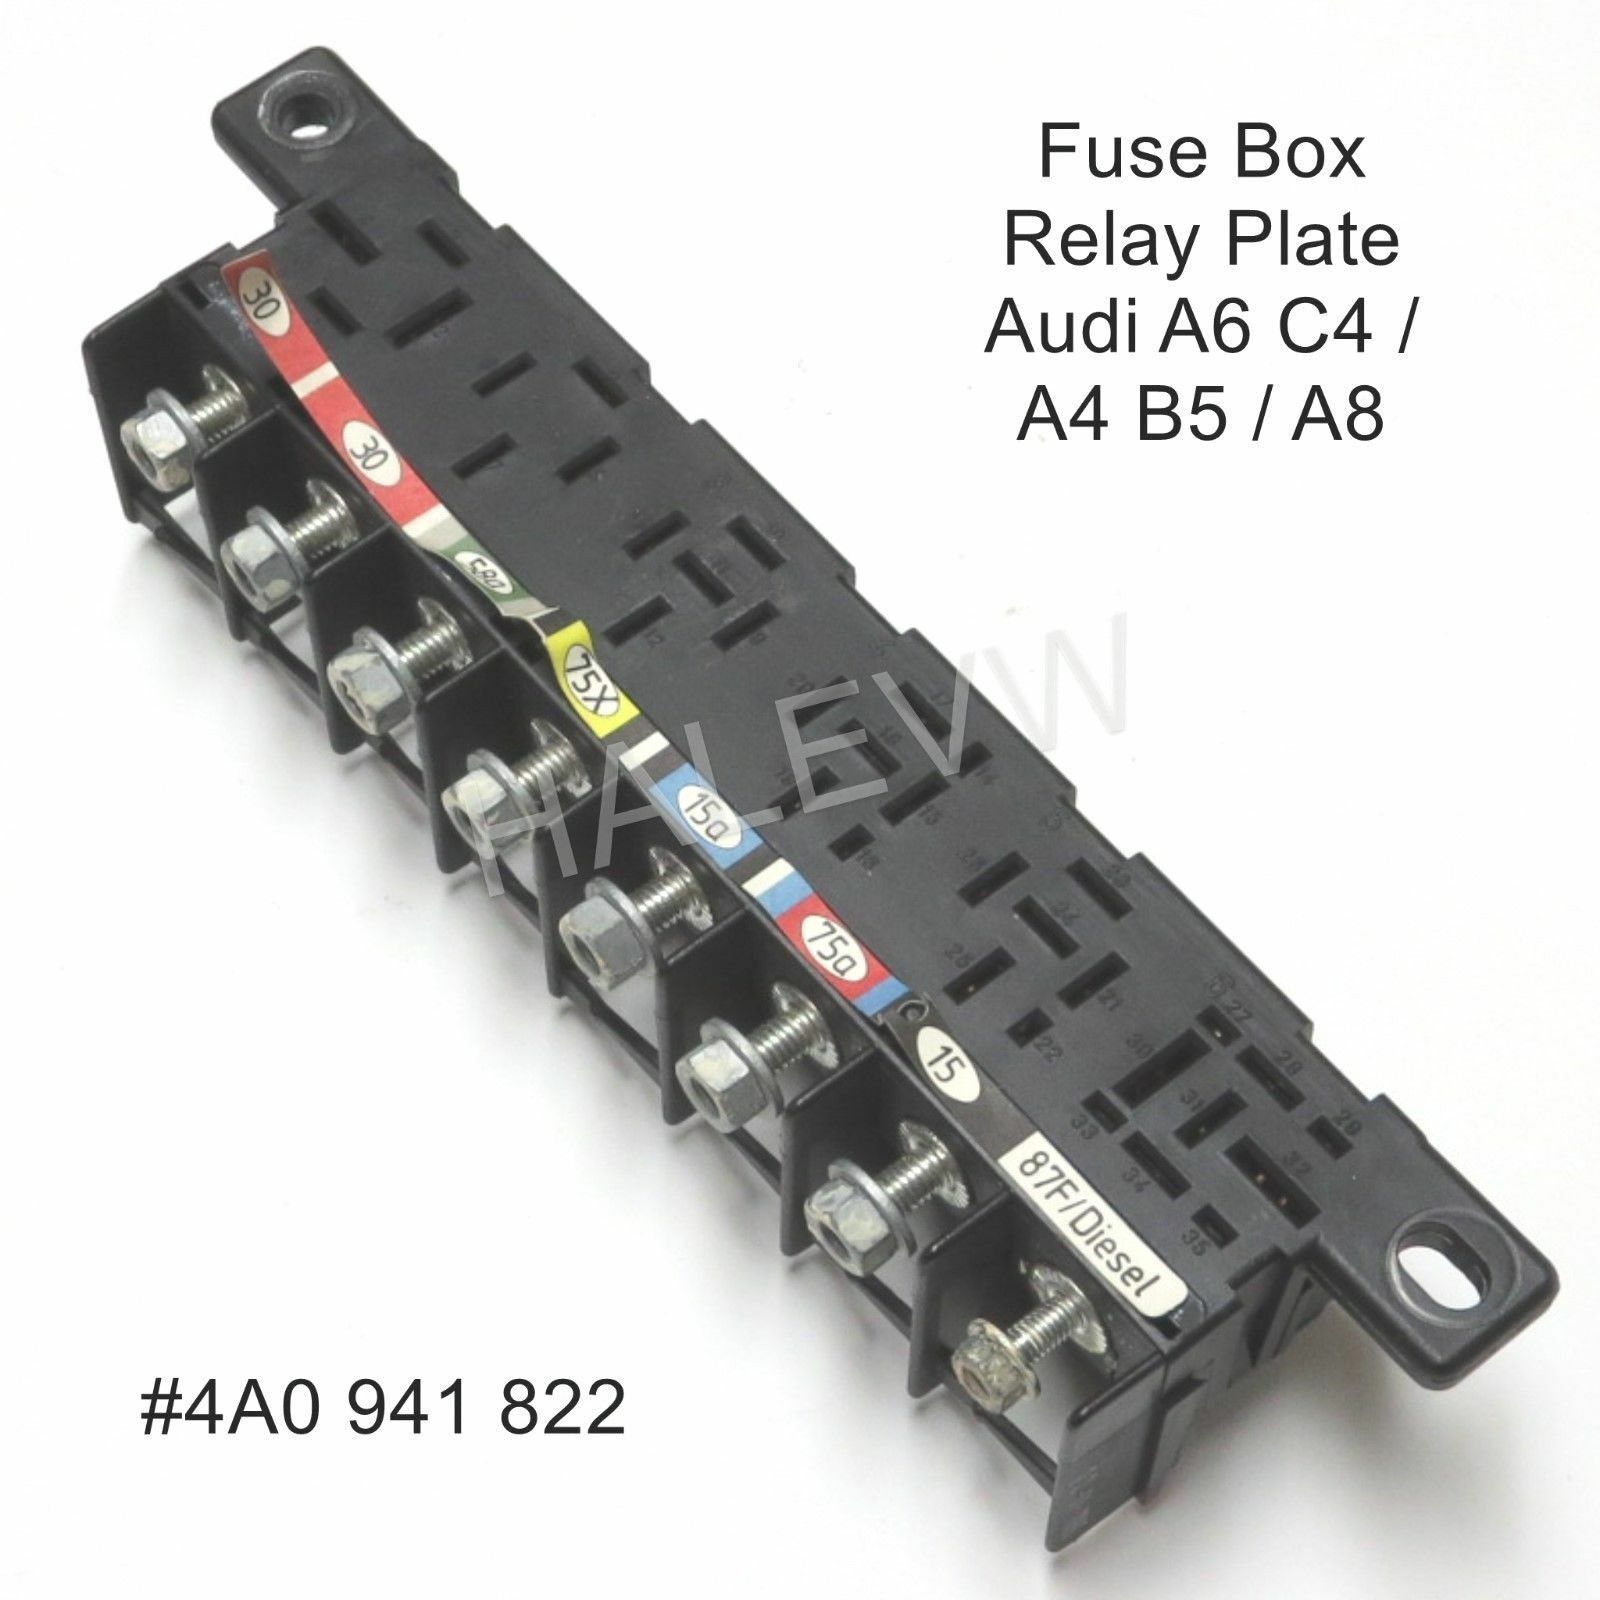 Genuine Oem 1997 Audi A6 Quattro Relay Holder Plate 4a0941822 Ebay 99 Hyundai Accent Fuse Box Norton Secured Powered By Verisign